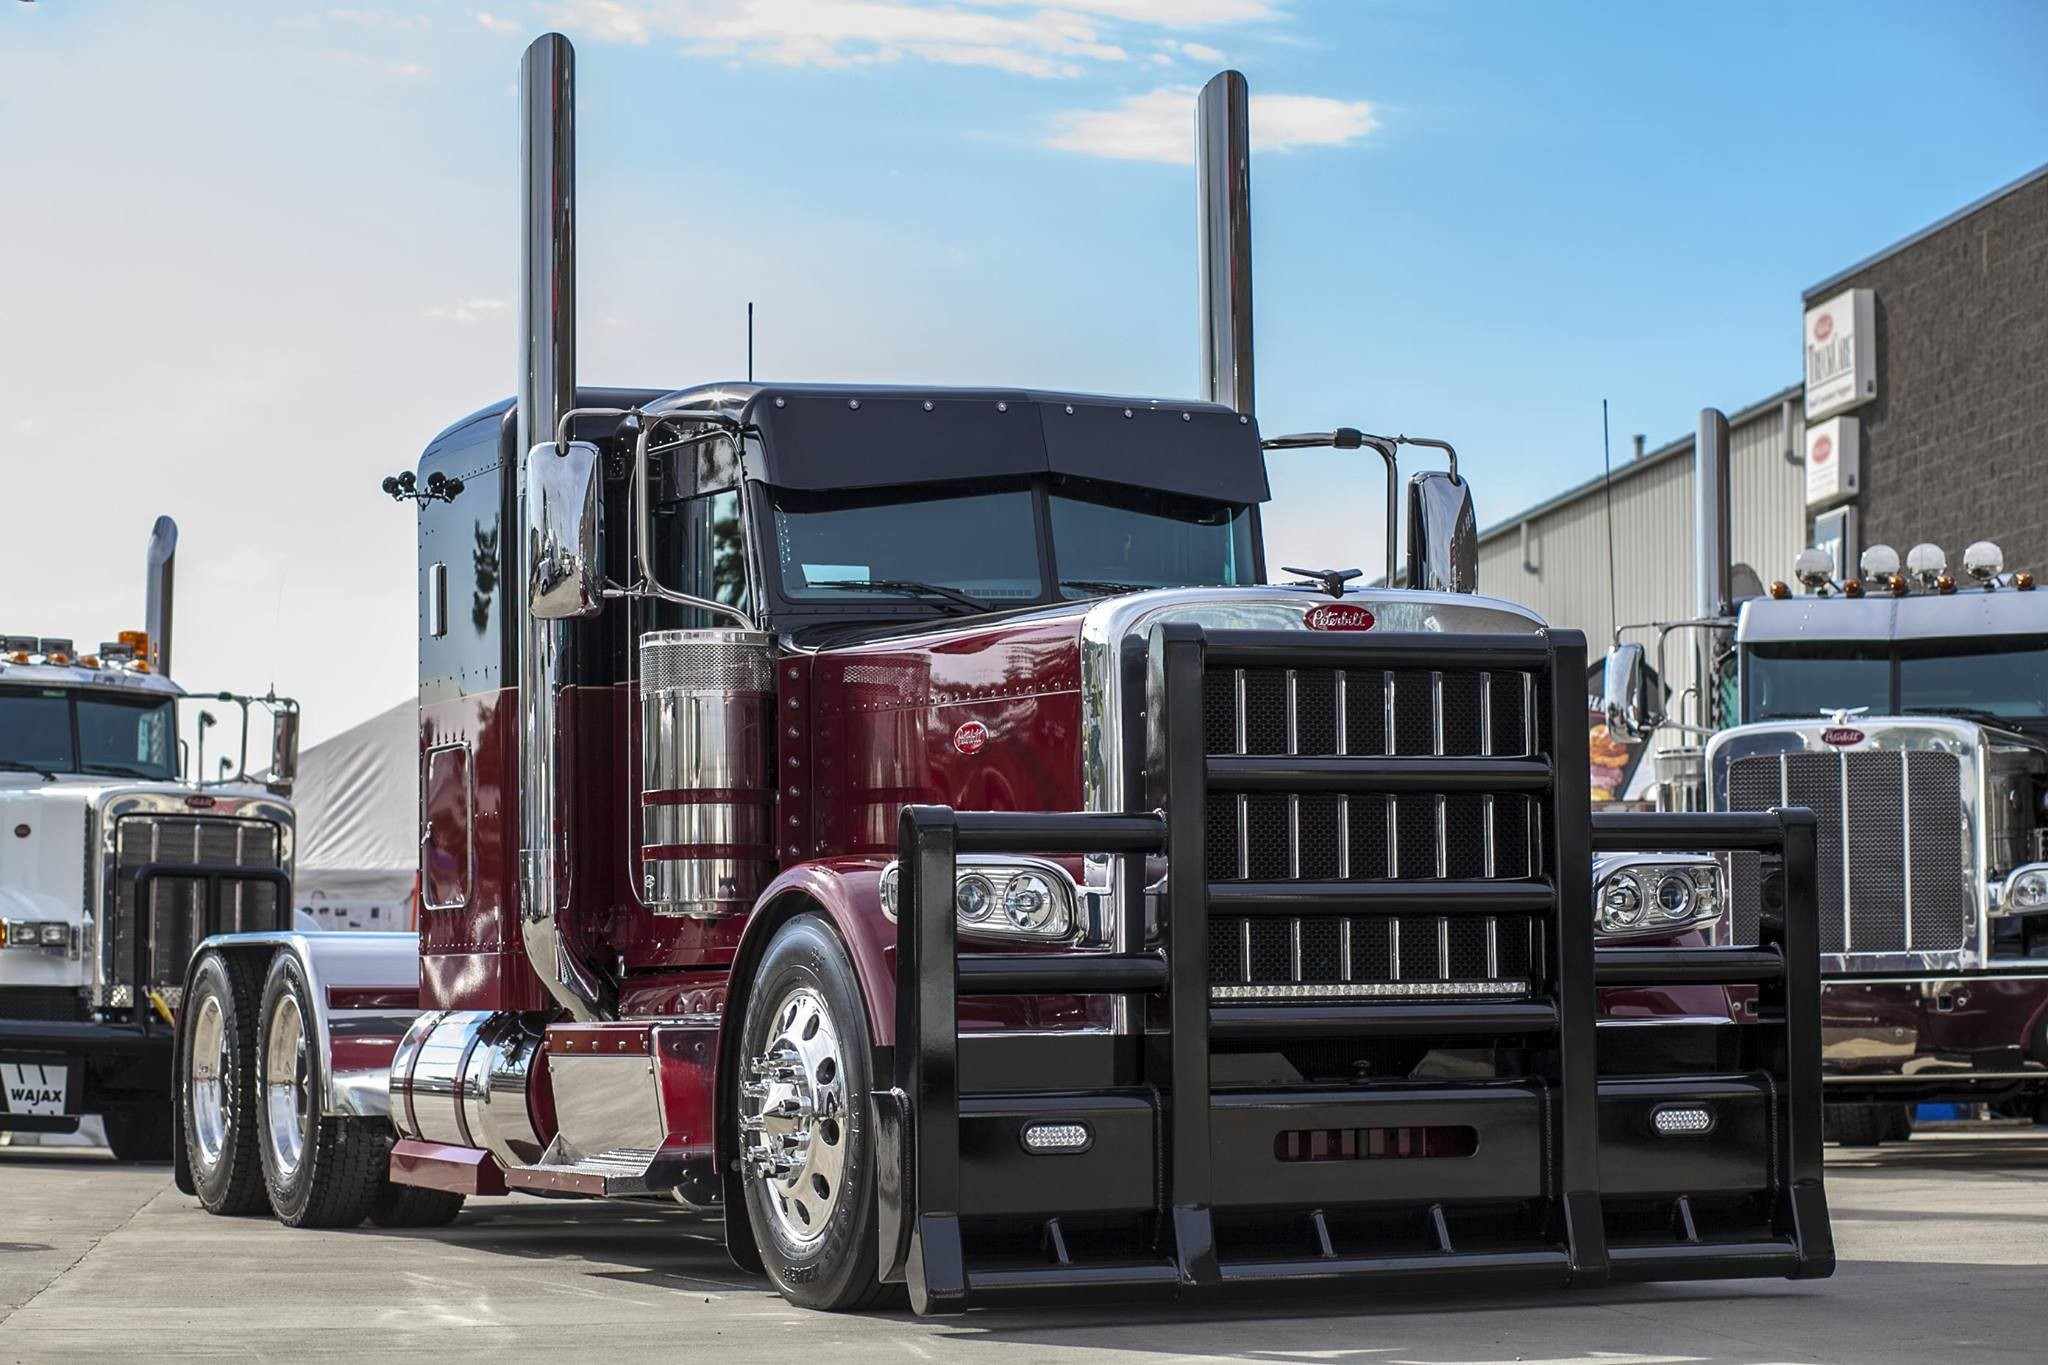 2048x1365 Peterbilt wallpaper | 2256x1496 | 164167 | WallpaperUP